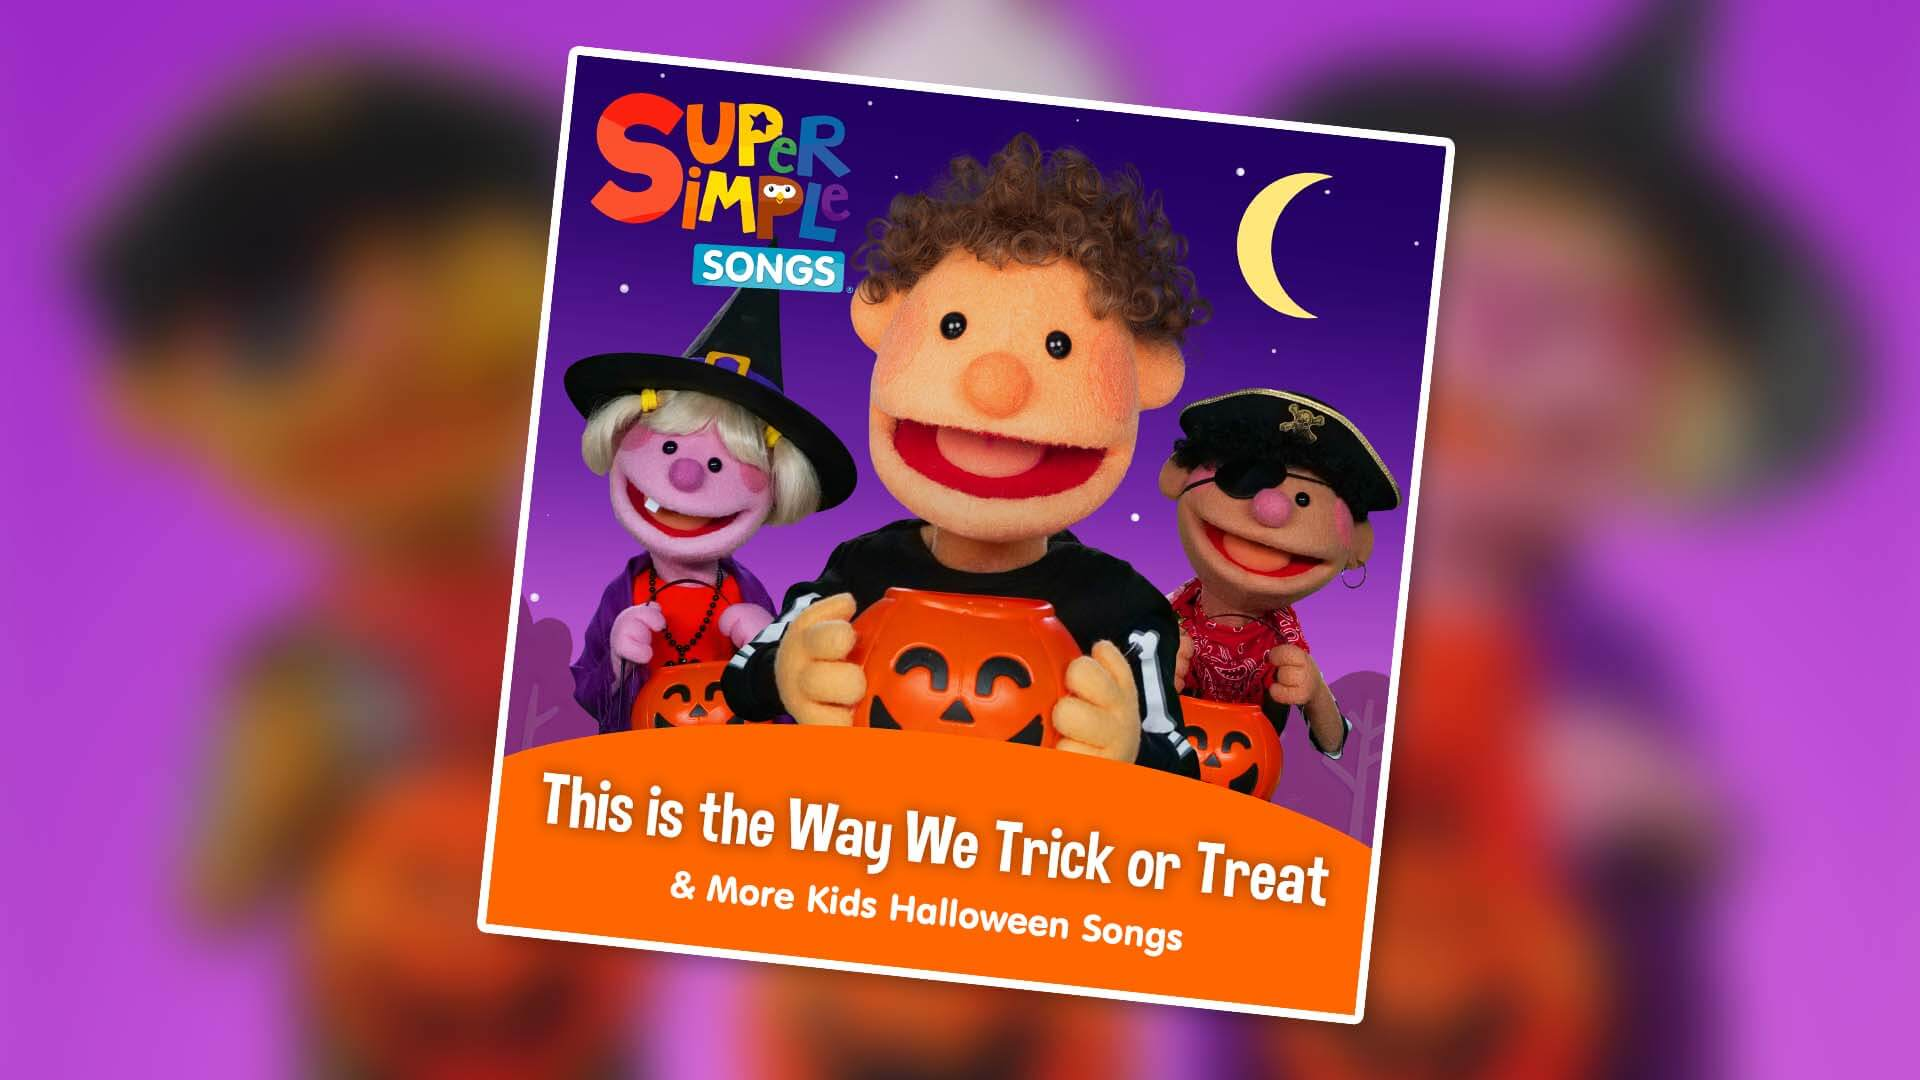 Skyship Entertainment and Warner Music Group's Arts Music release new Super Simple Songs album This Is The Way We Trick Or Treat & More Kids Halloween Songs